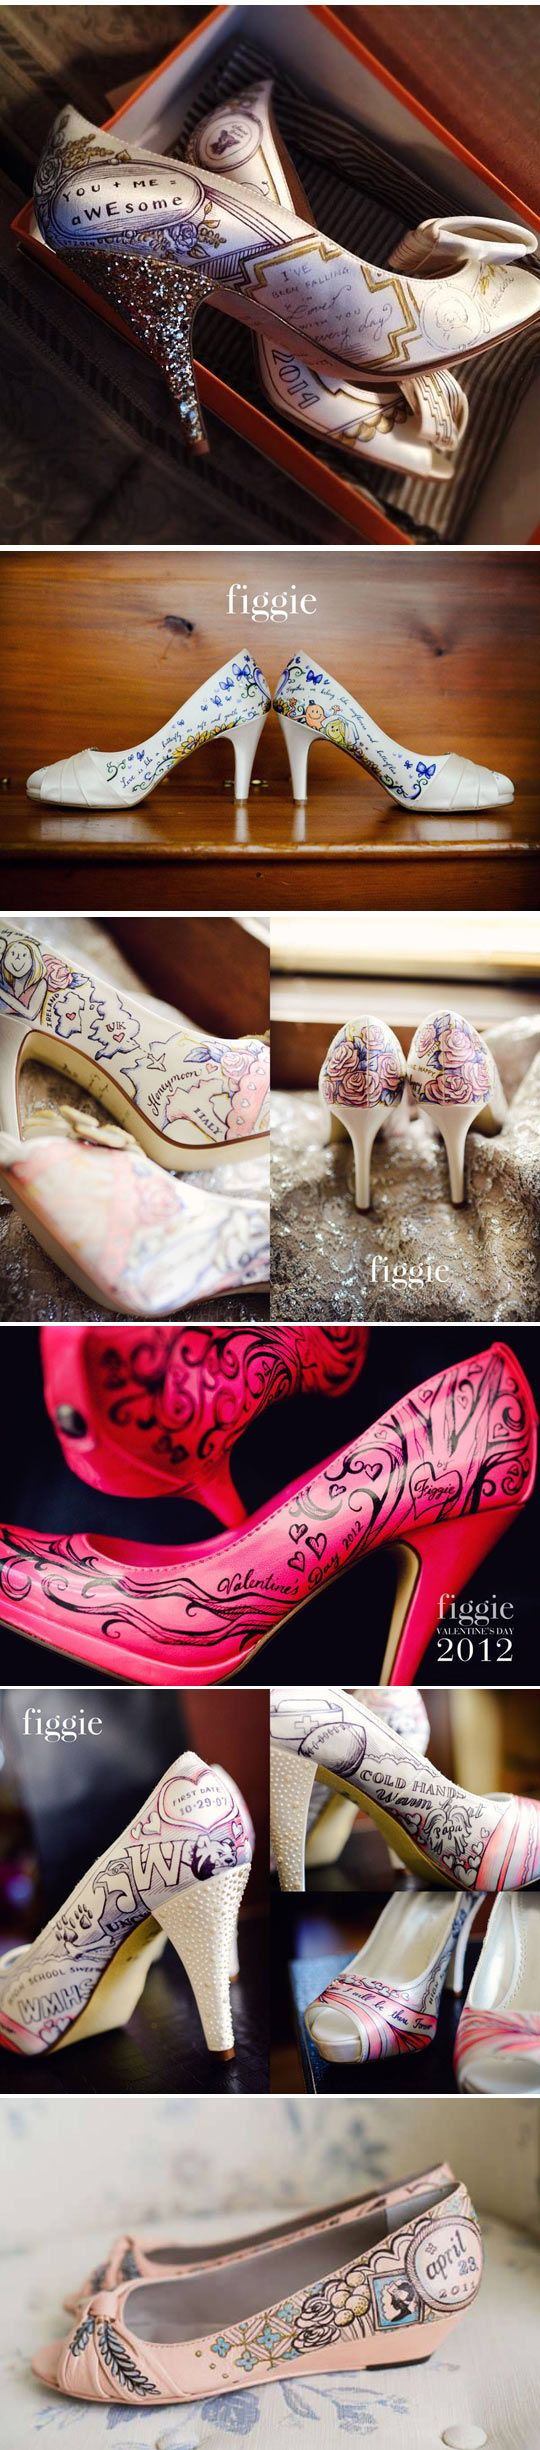 Stunning shoes you can get customized by an artist...